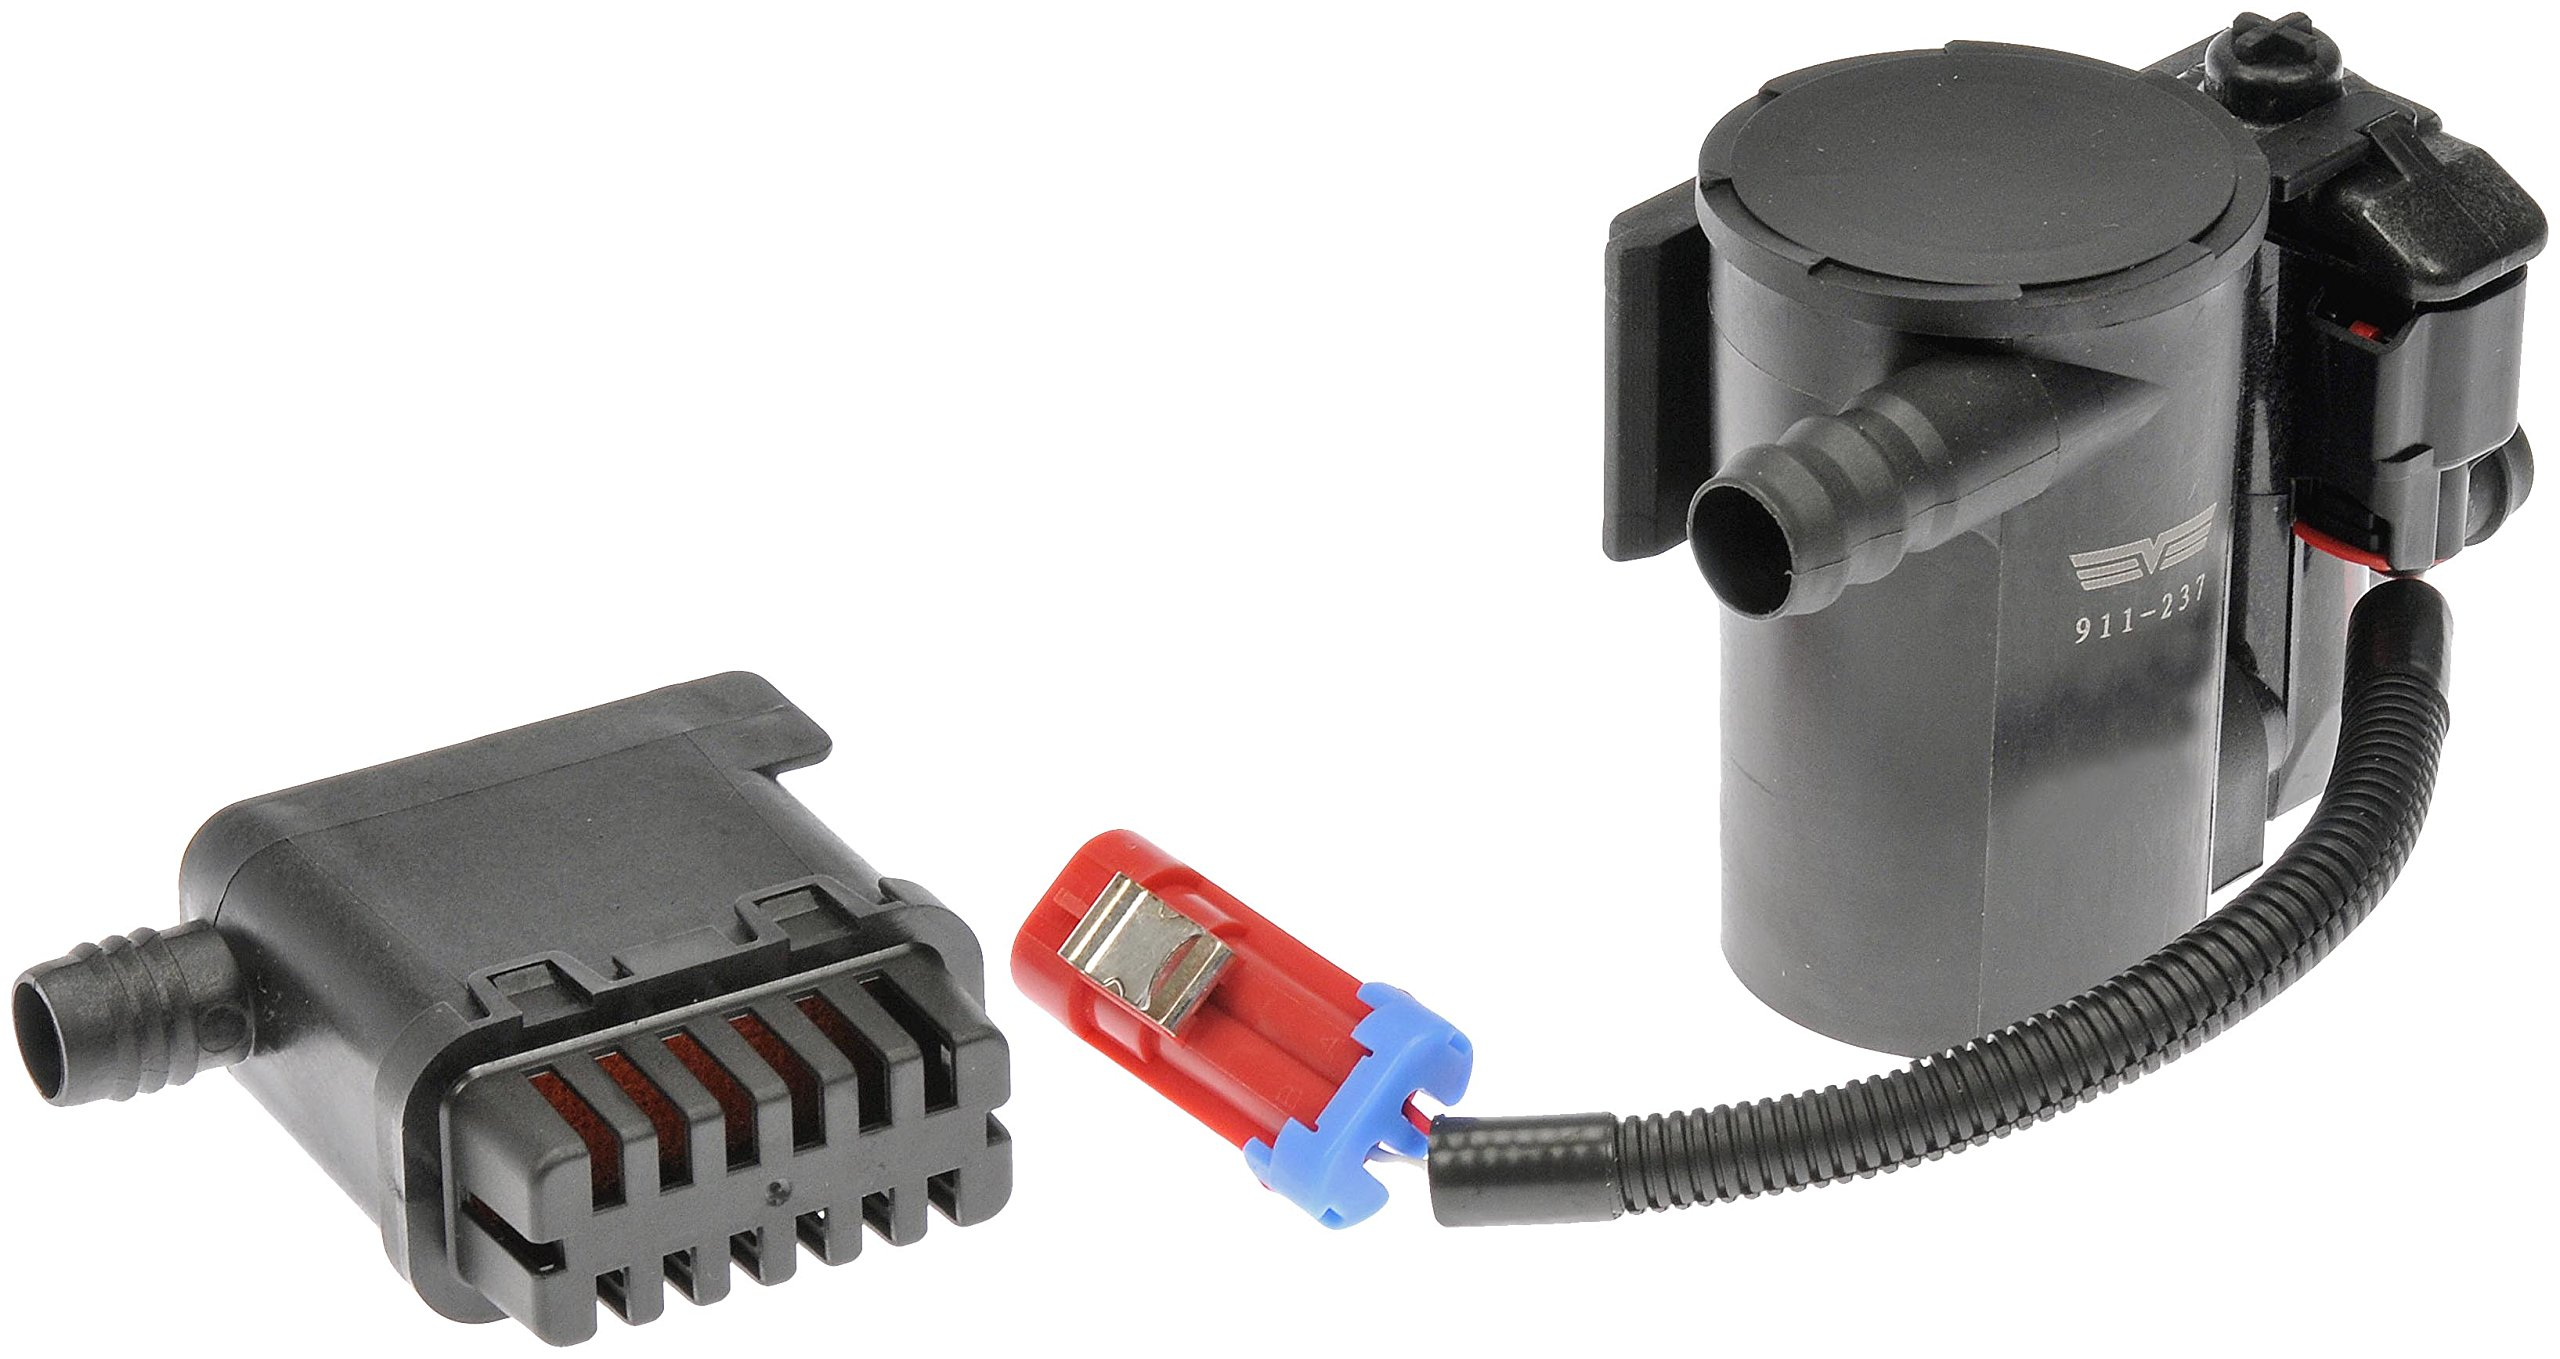 Dorman 911-237 Evaporative Emissions Canister Vent Valve (With Filter Assembly) for Select Chevrolet/GMC Models